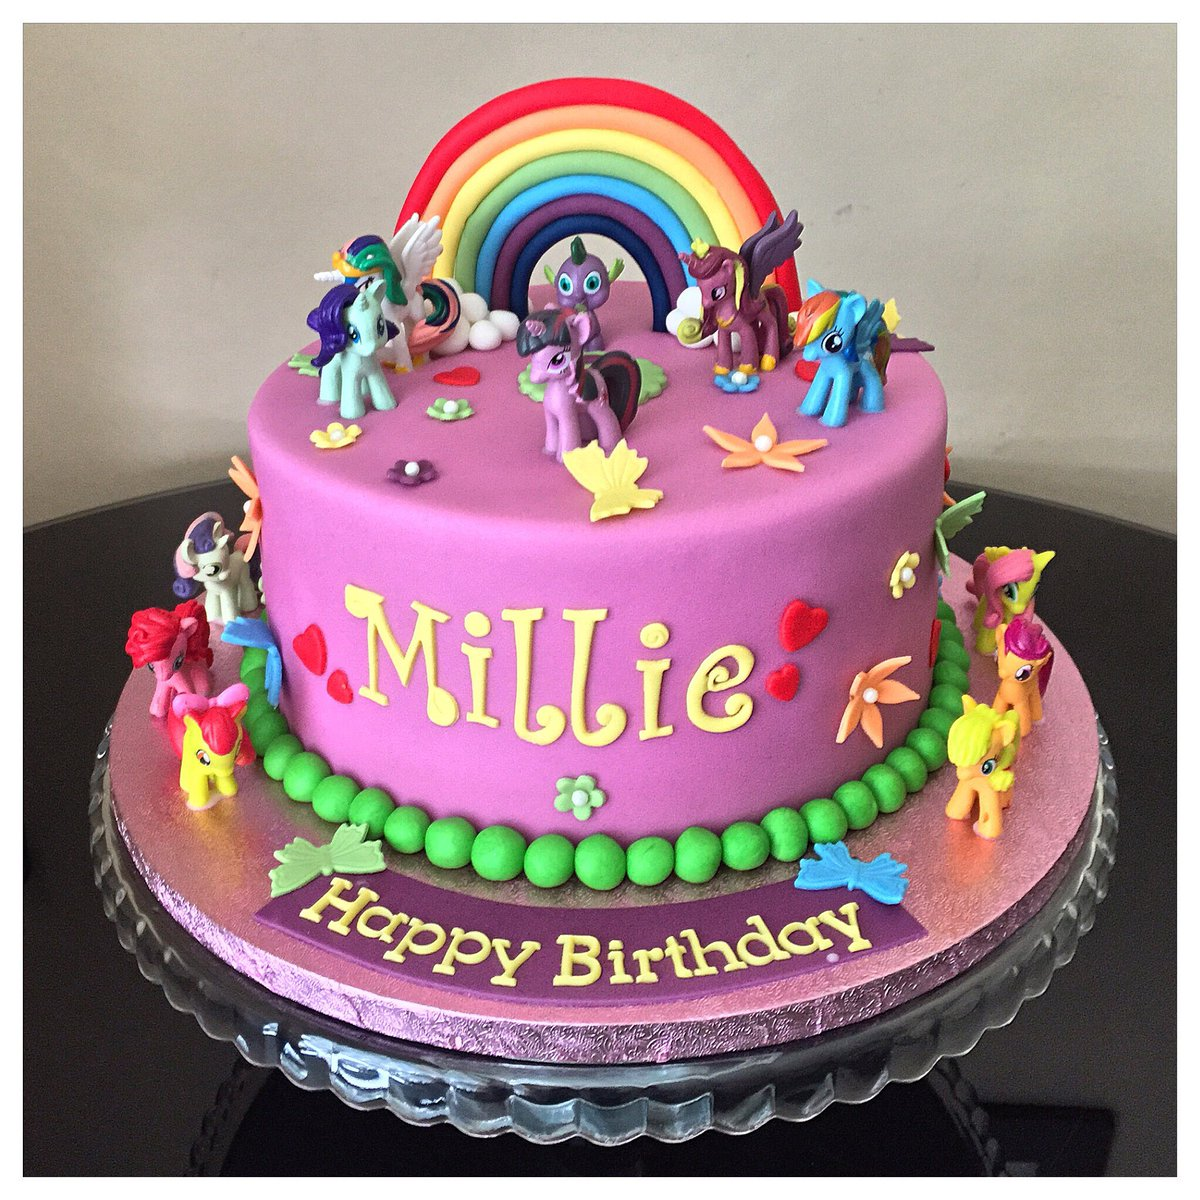 My Little Pony Birthday Cake.Marias Cake Boutique On Twitter My Little Pony Themed